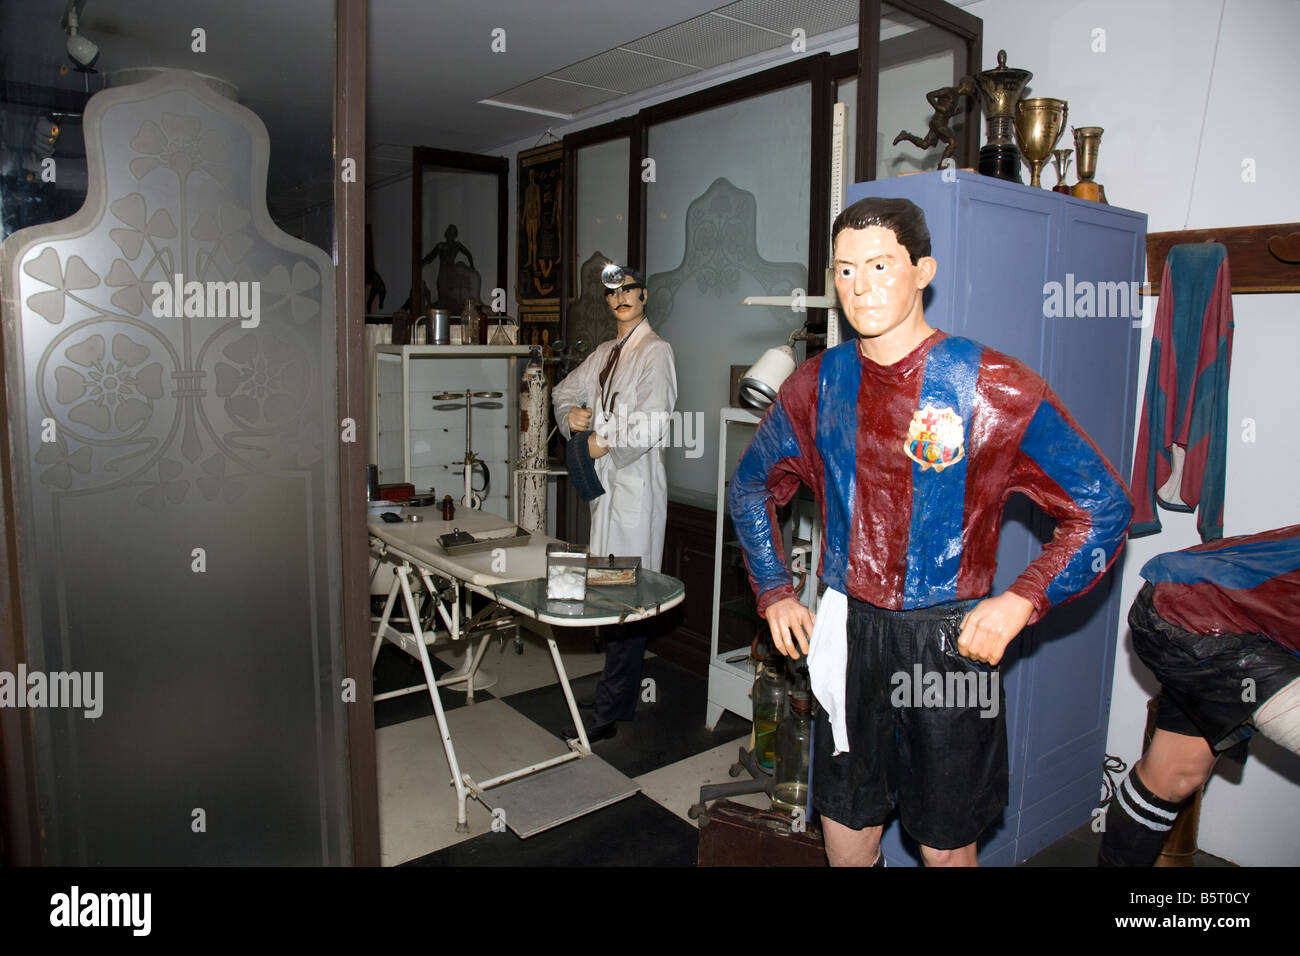 An olden days mock up football treatment room at Nou Camp, Barcelona Catalonia Spain - Stock Image